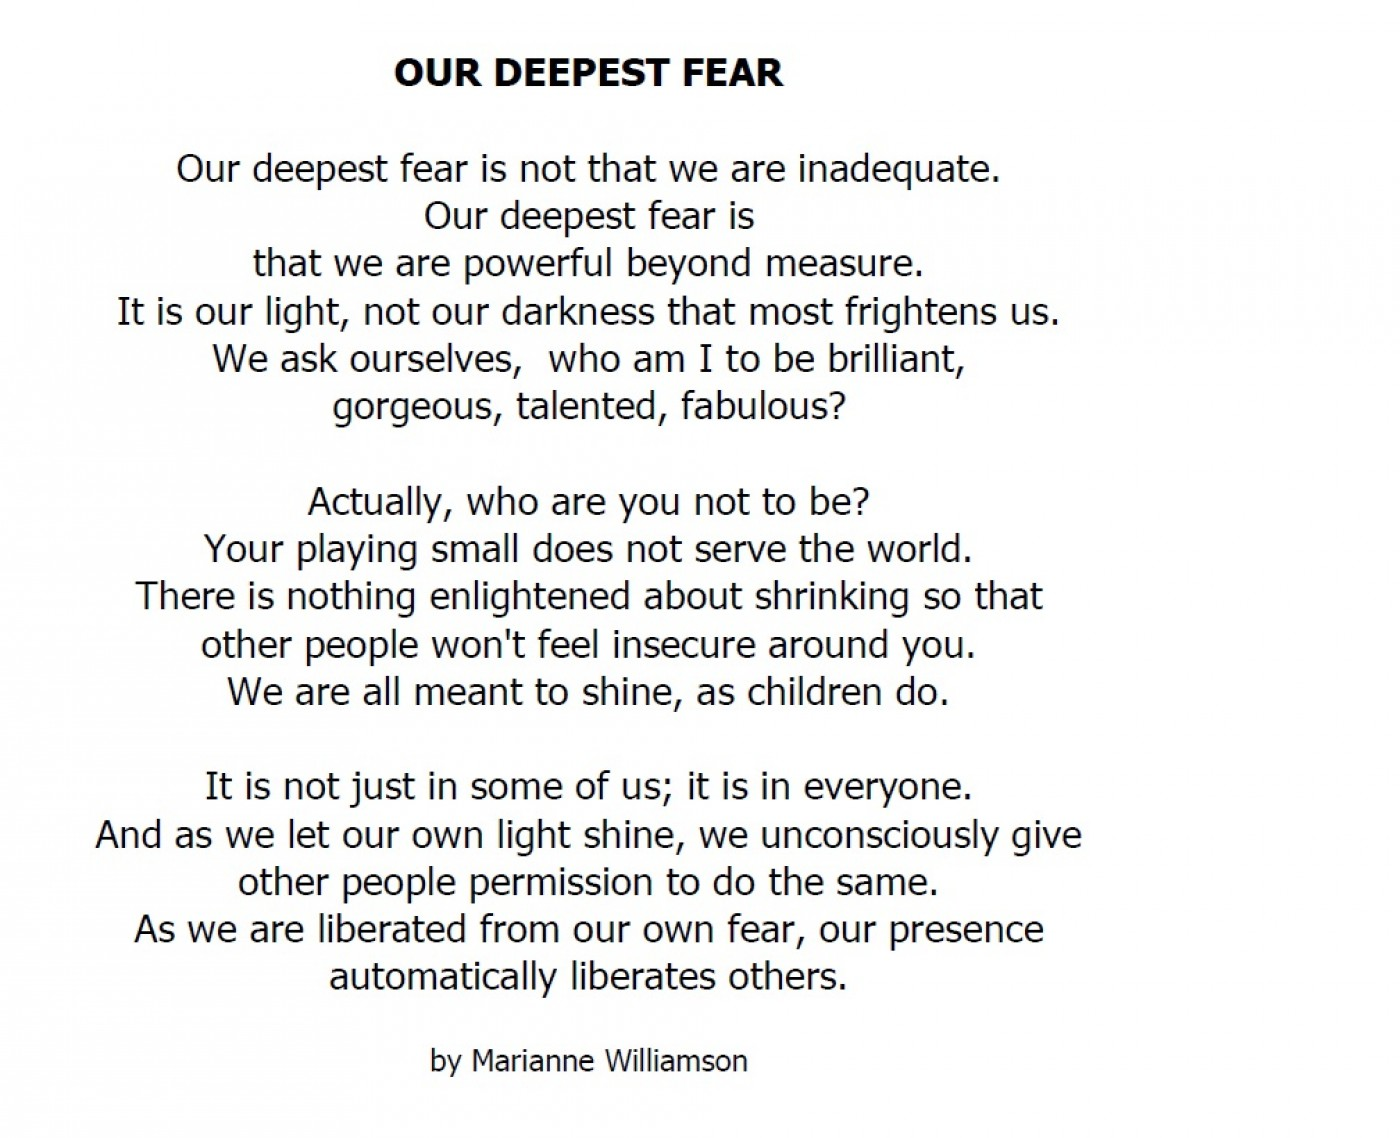 012 Our Greatest Fear Essay On Stupendous Of Darkness My Failure Ways To Overcome Public Speaking 1400